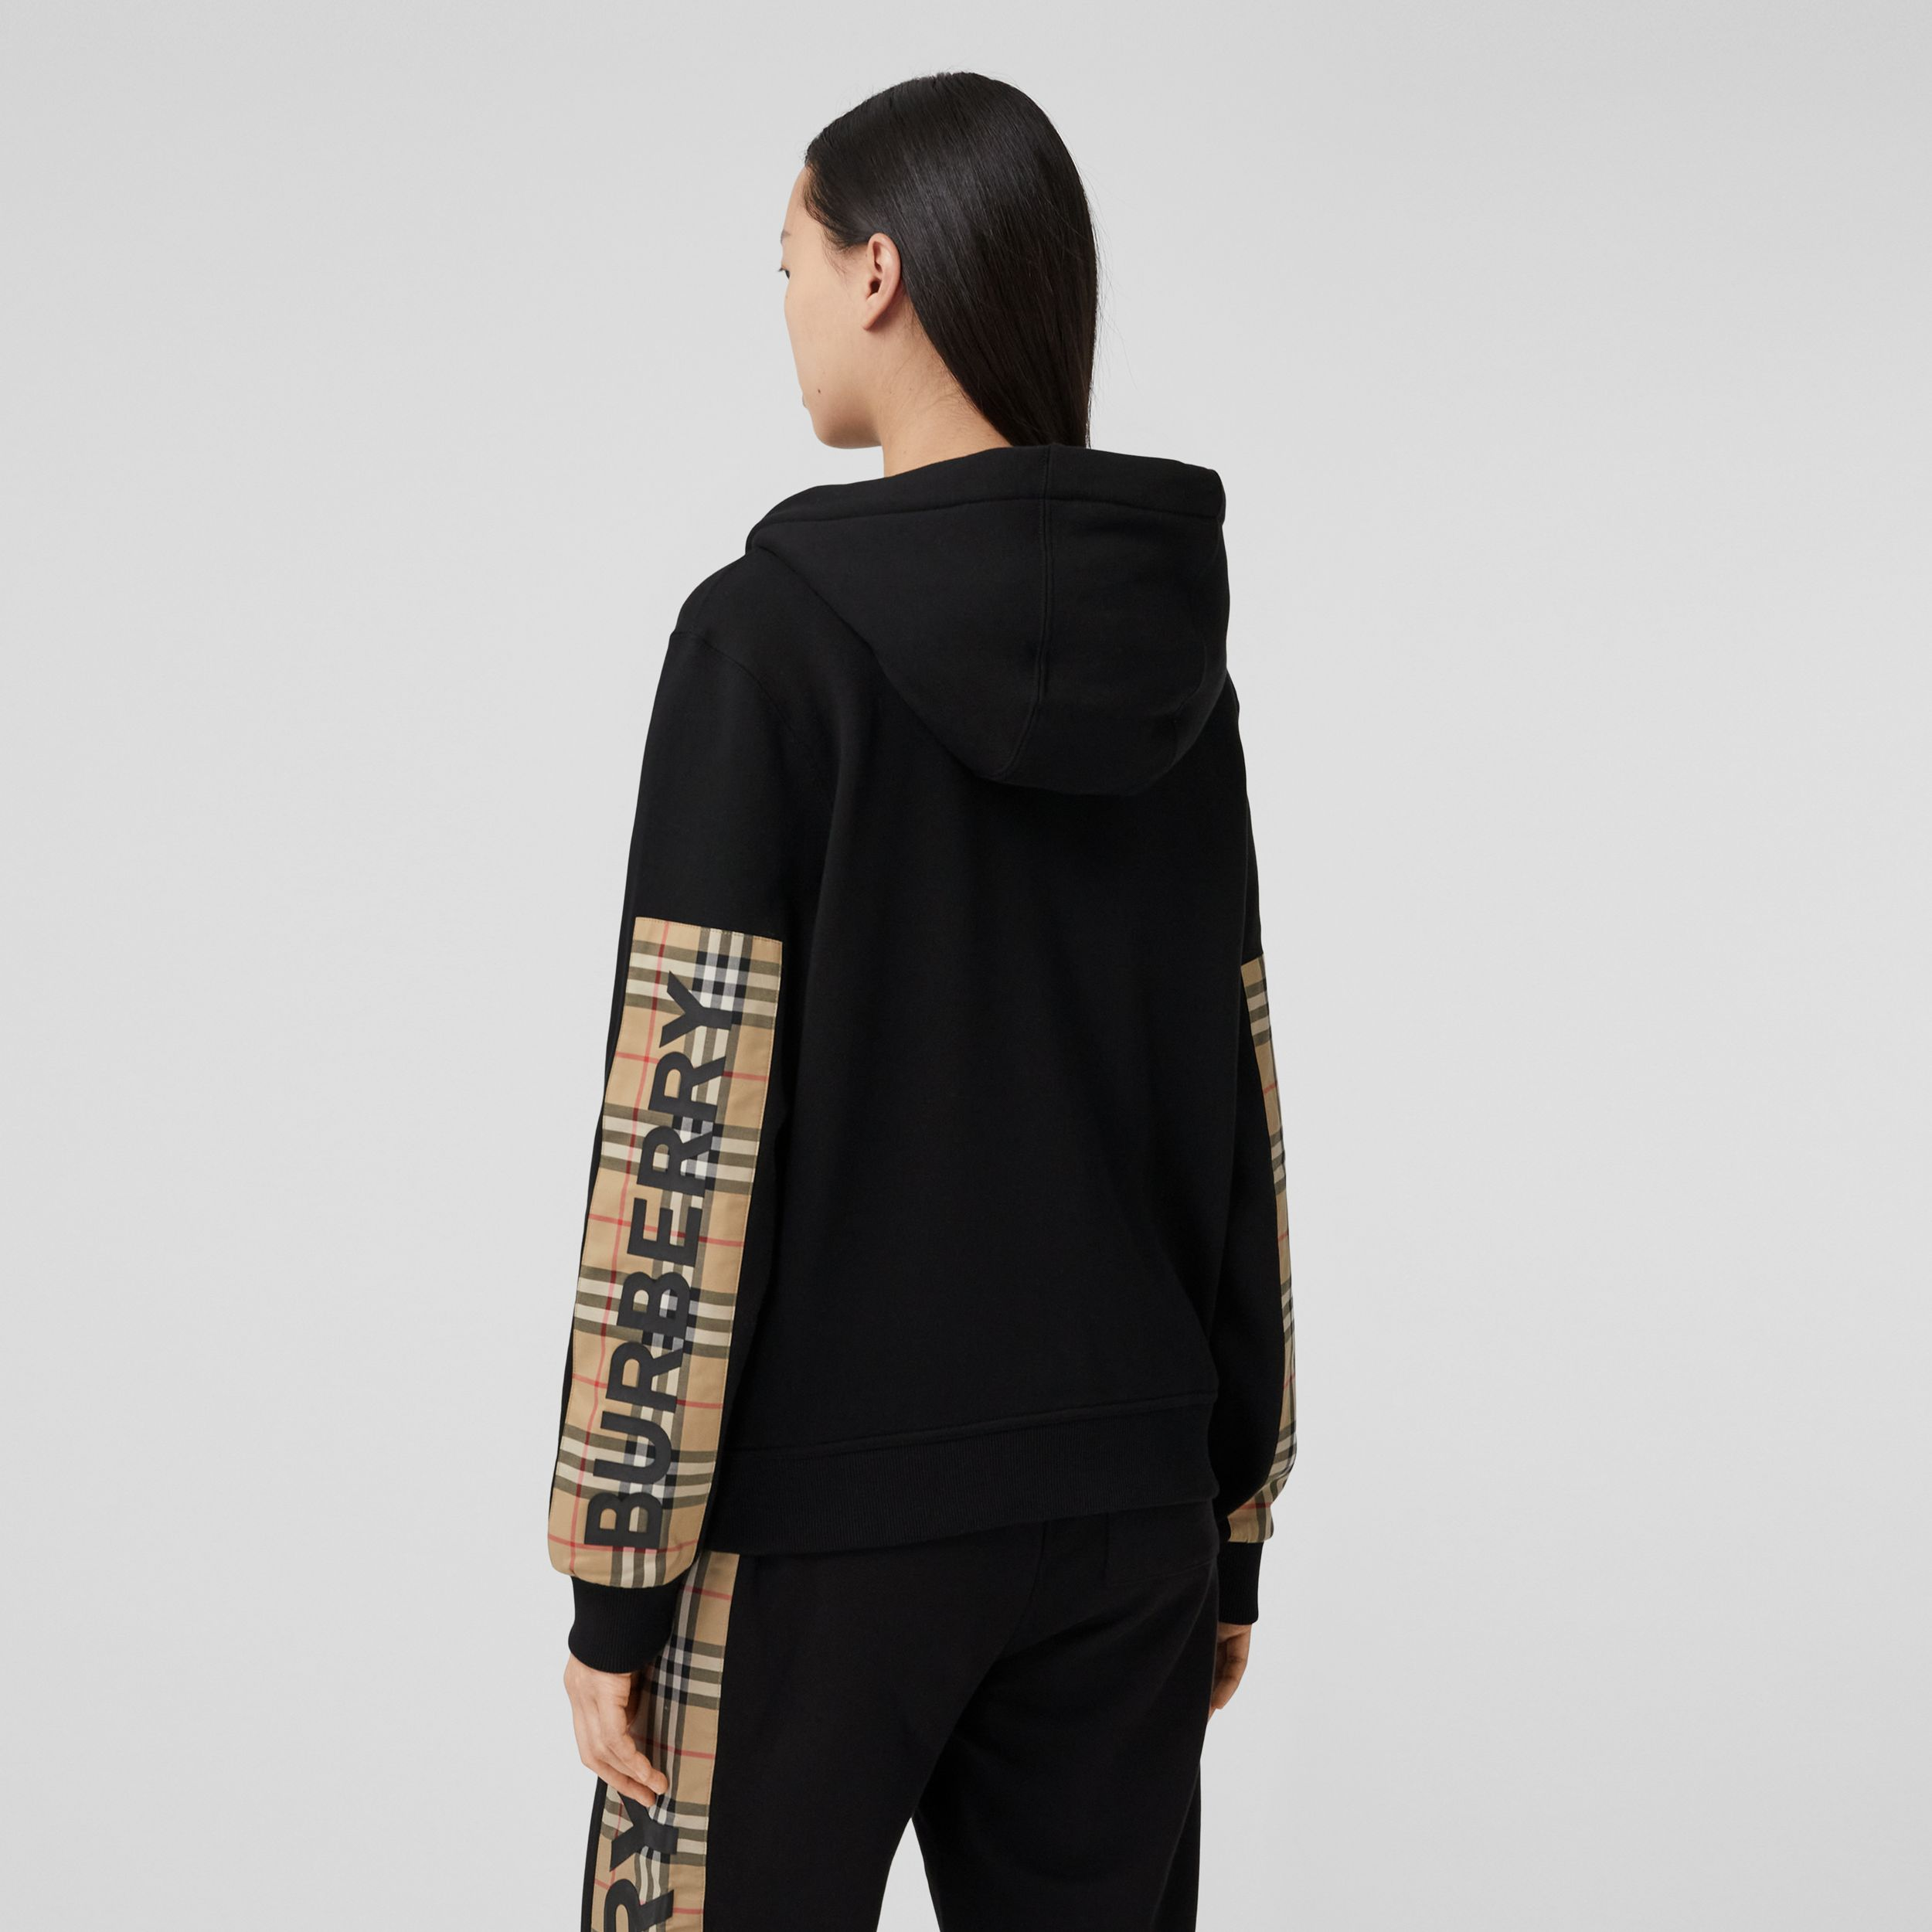 Vintage Check Panel Cotton Oversized Hooded Top in Black - Women | Burberry - 3